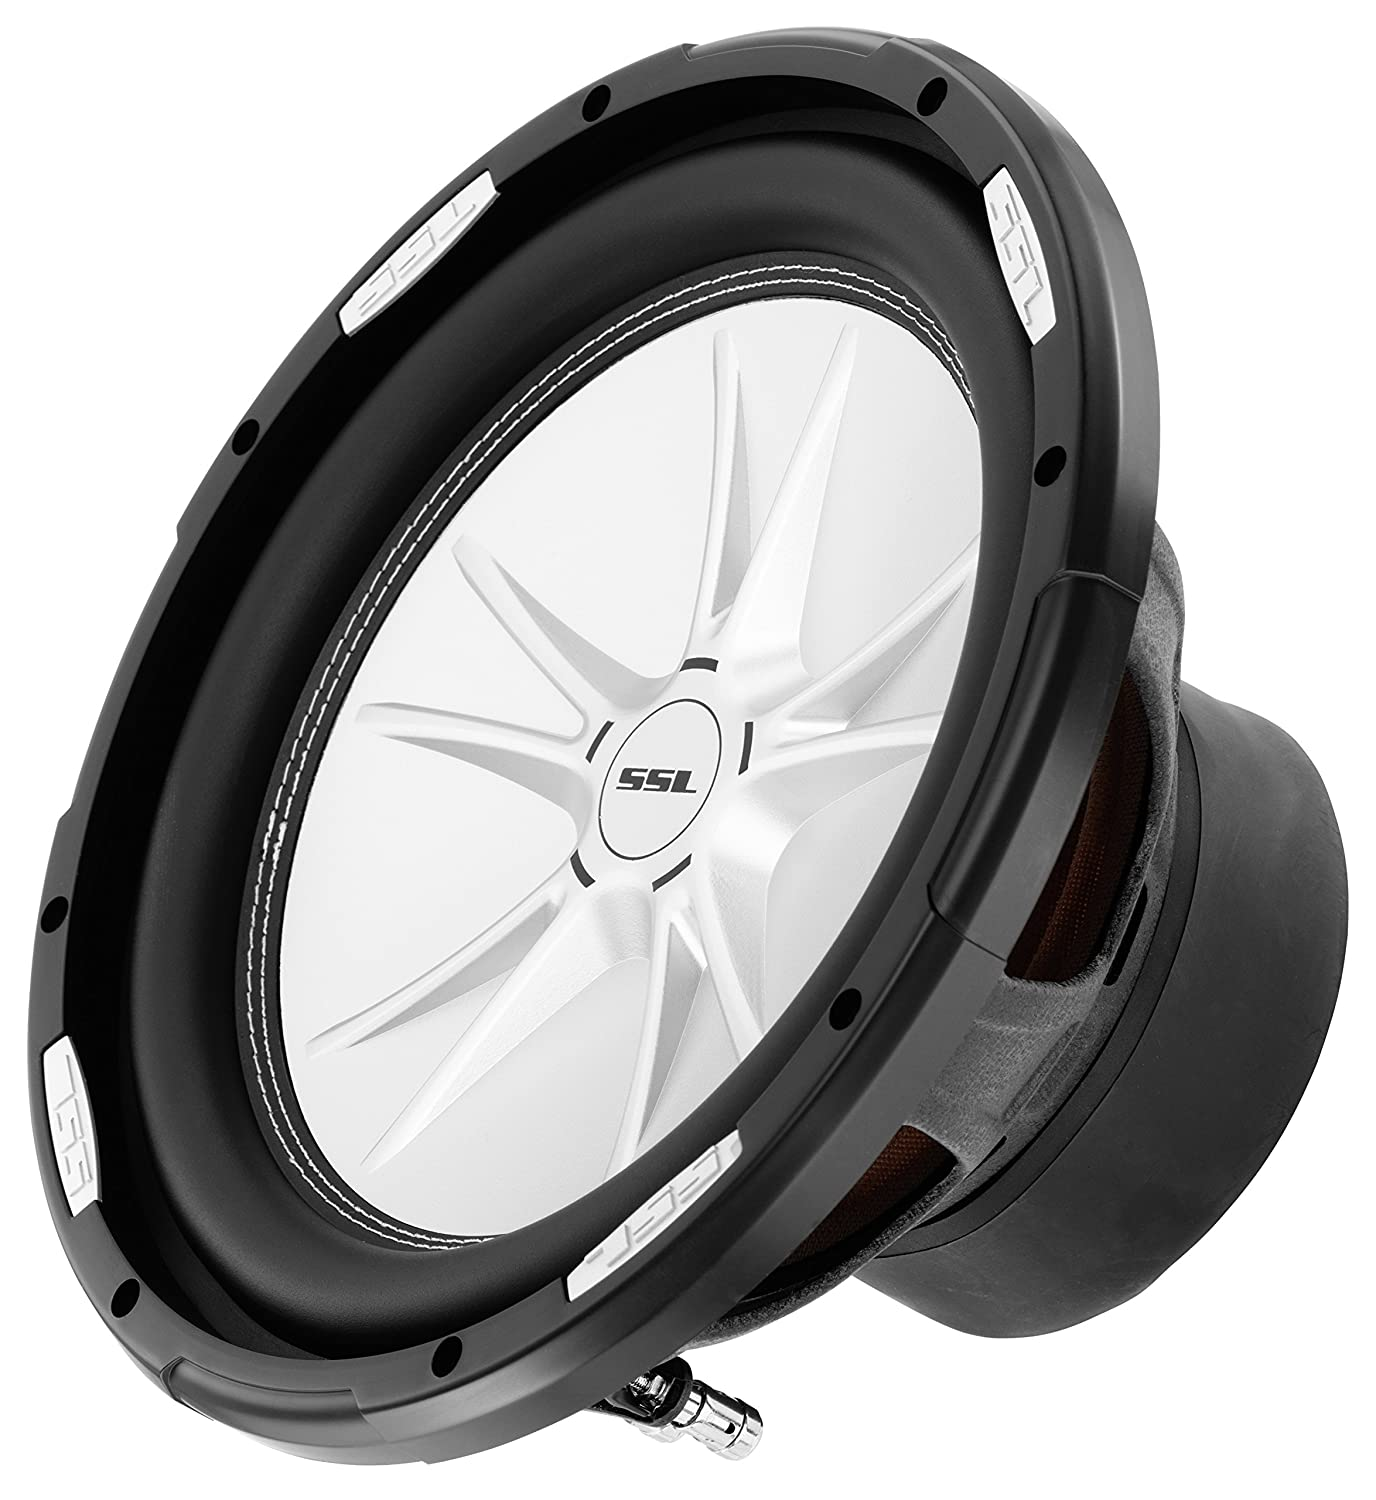 Sound Storm Slr12dvc 12 Inch 2500 Watt Dual 4 Ohm Surround Speaker Wiring Diagram Also How To Wire A Voice Coil Car Subwoofer Electronics